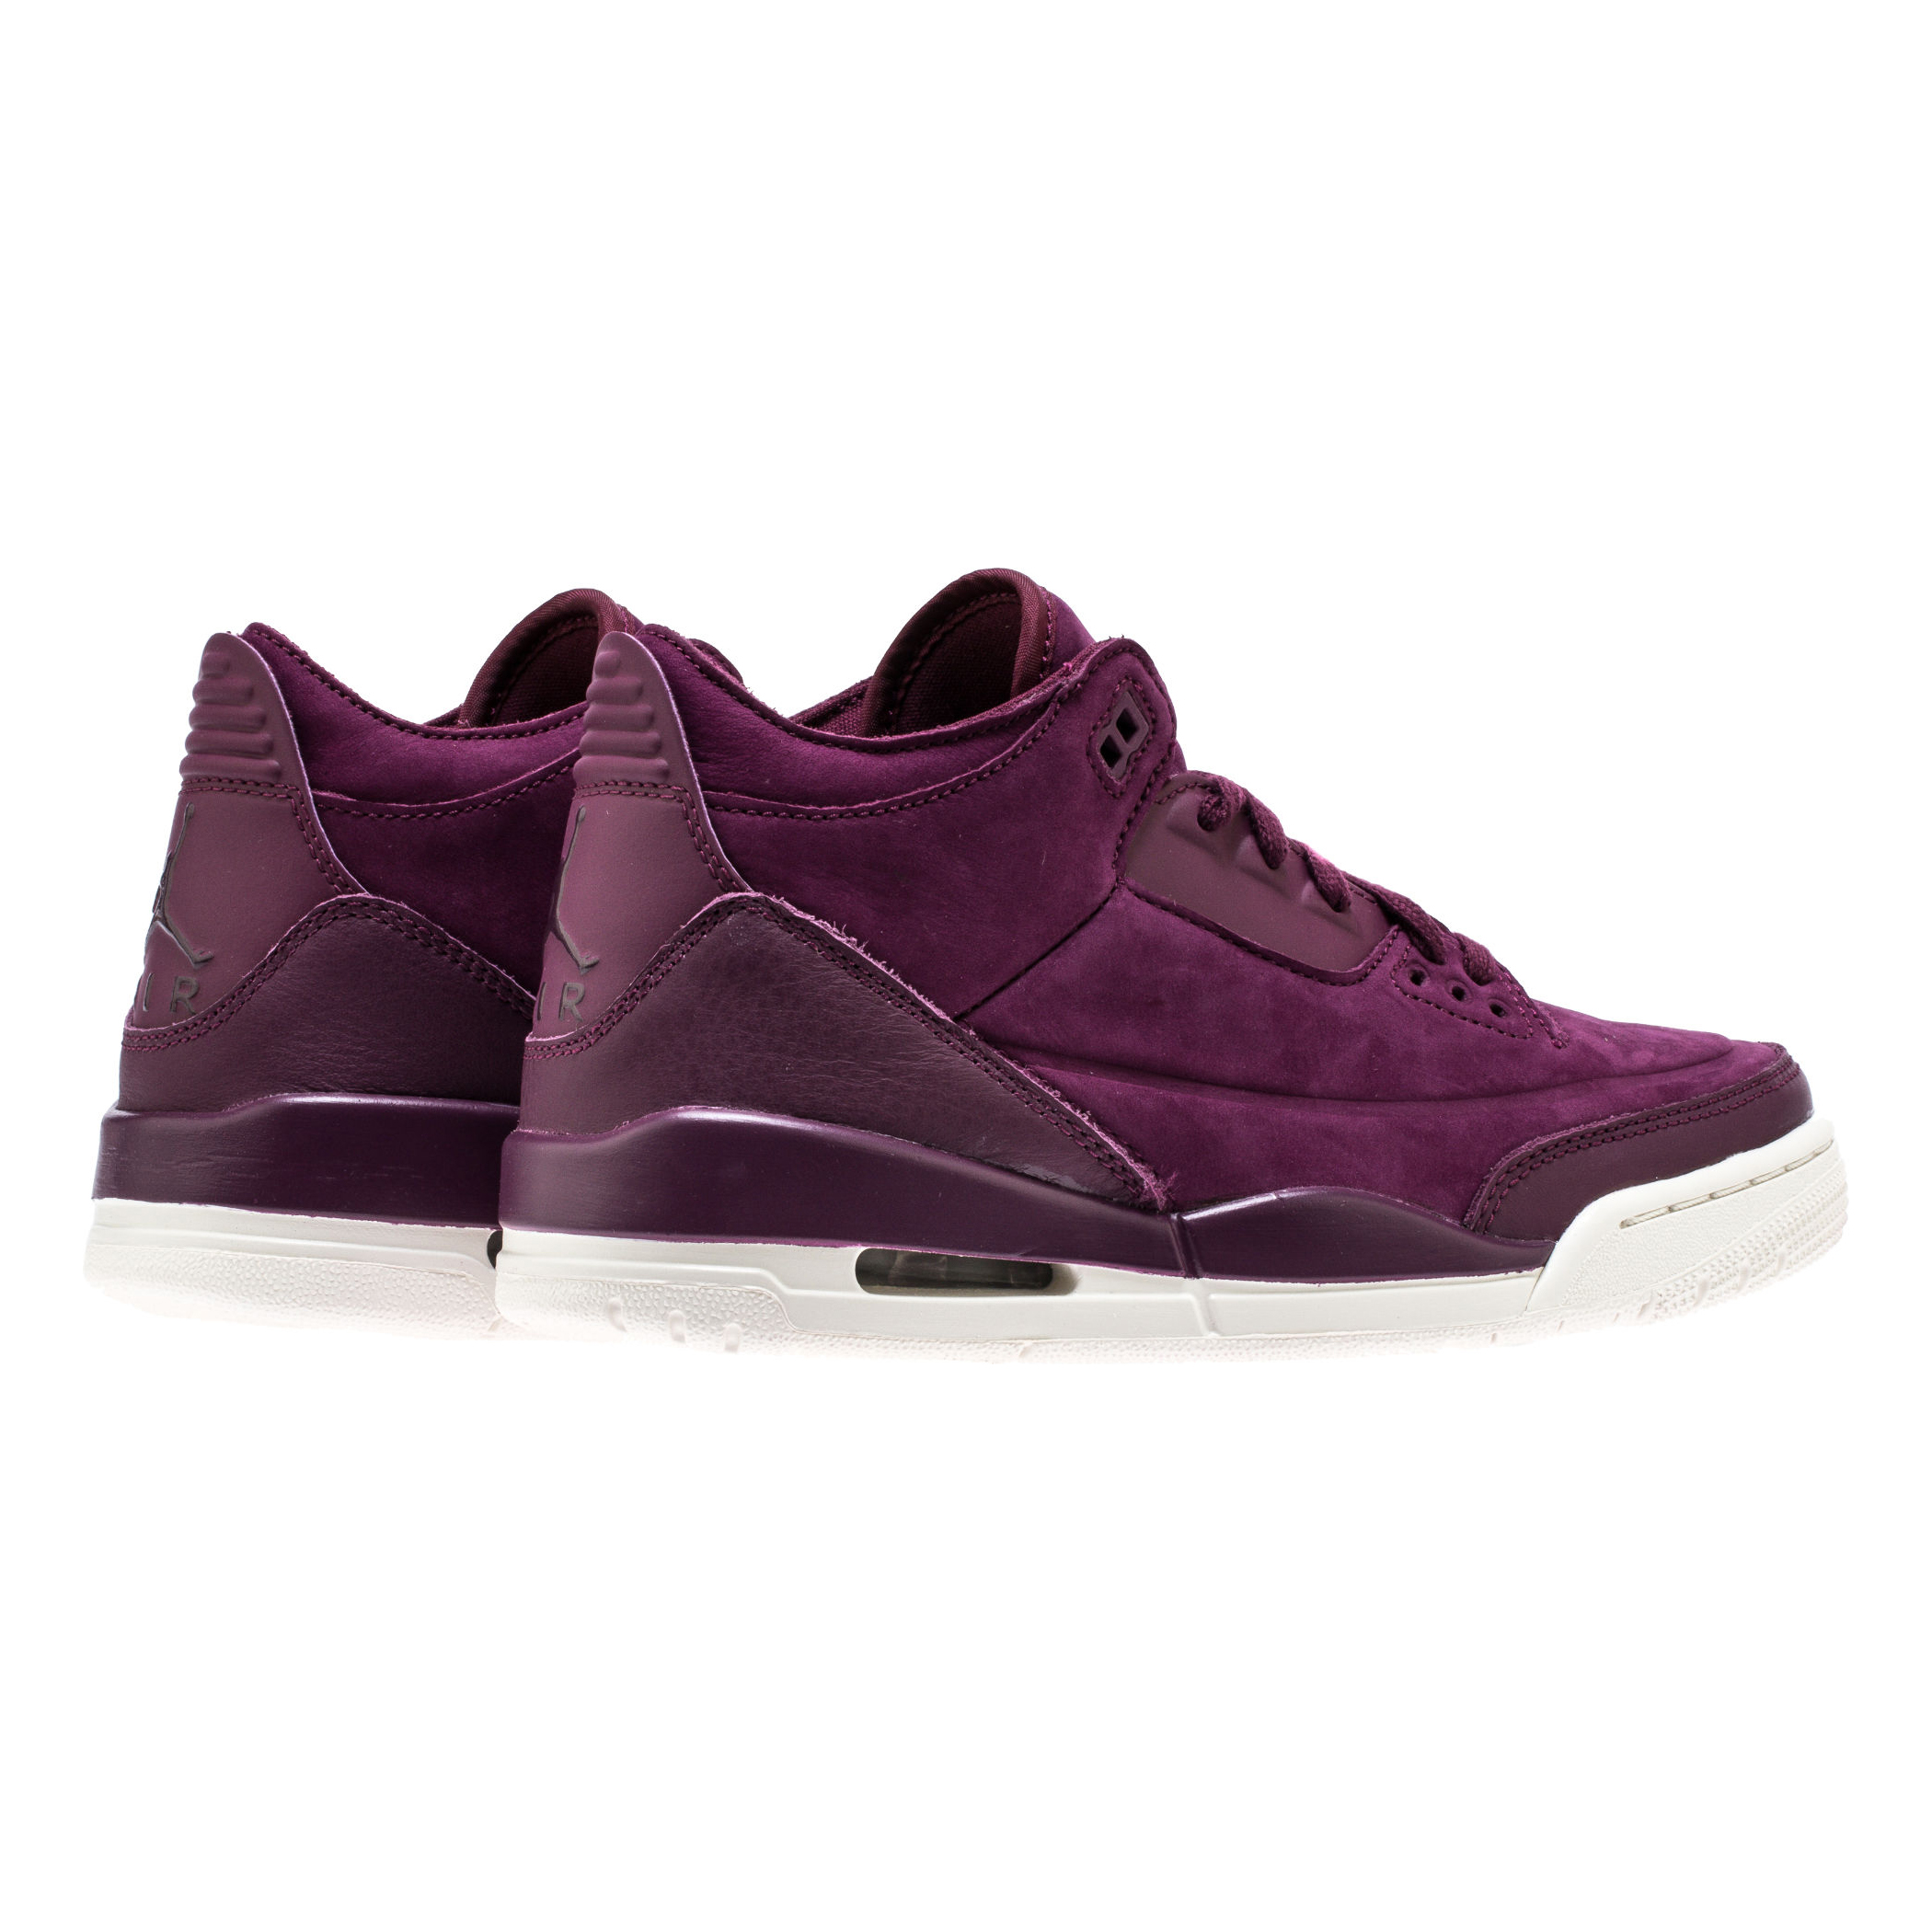 best sneakers c0077 9c146 ... closeout air jordan 3 retro se bordeauxbordeaux phantom 2 29f69 14c2b